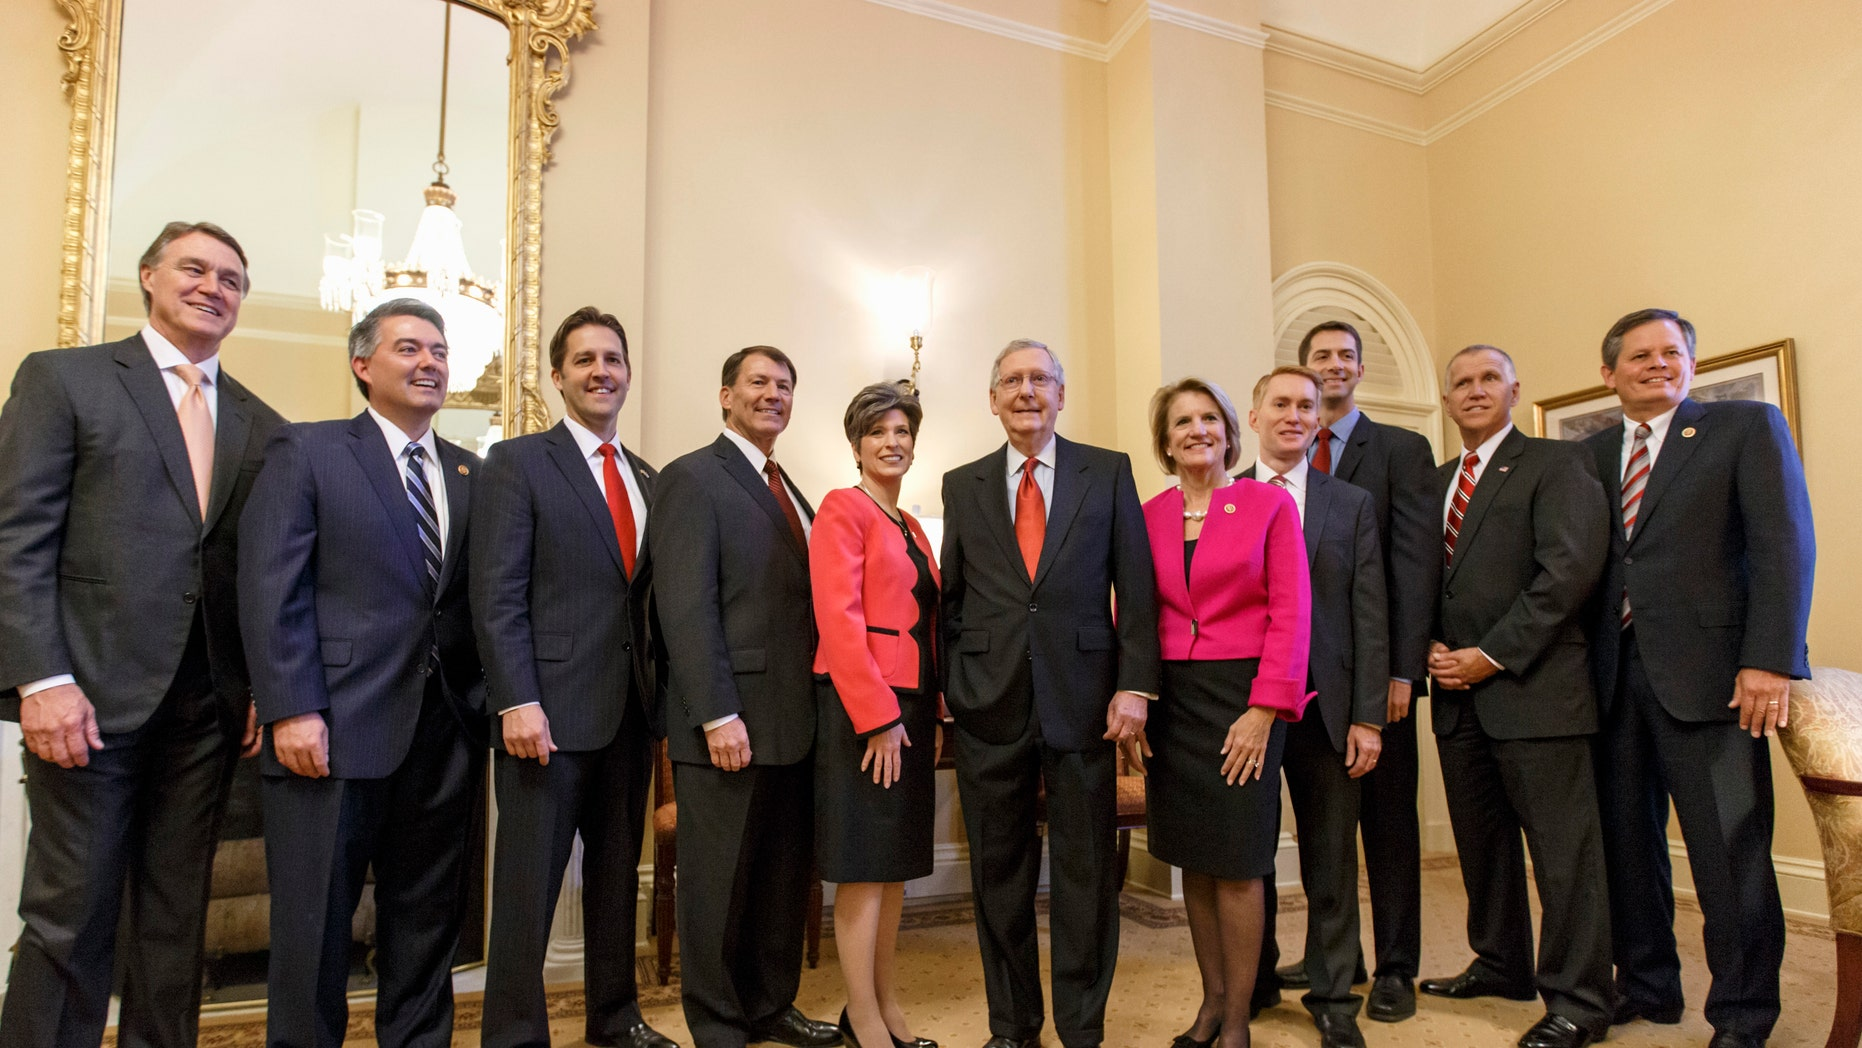 Nov. 12, 2014: Senate Minority Leader Mitch McConnell flanked by 10 newly-elected GOP senators. Washington, D.C .